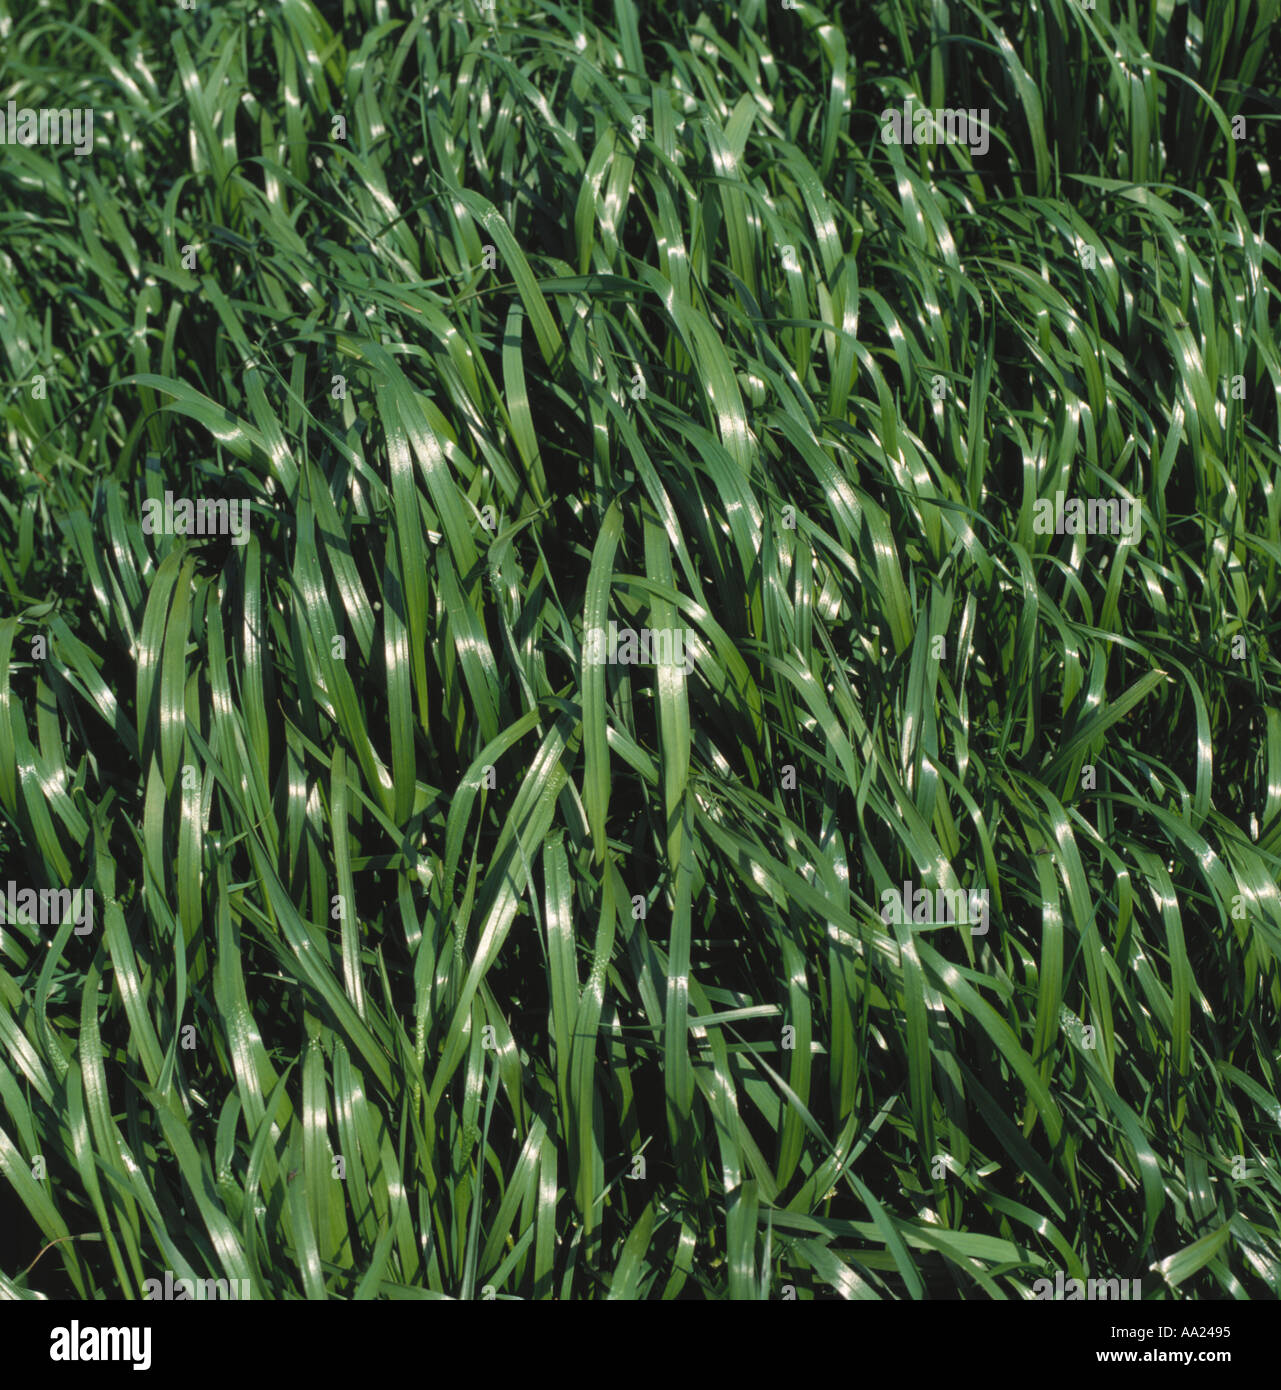 Ryegrass ley before the first cut - Stock Image